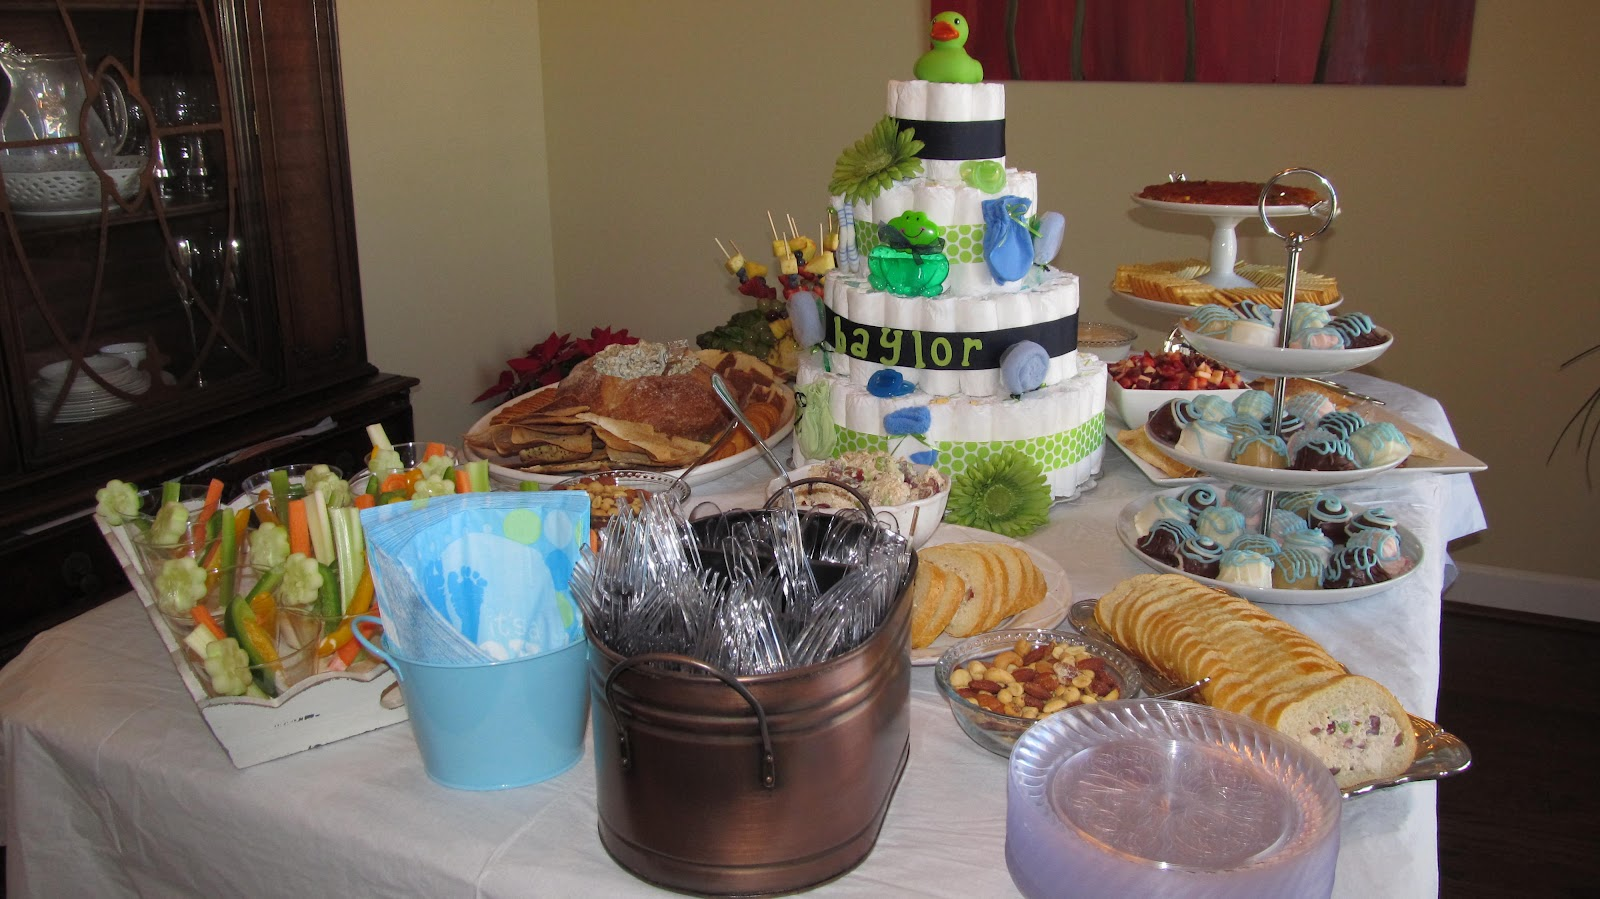 baby shower food table set up the yummy food table